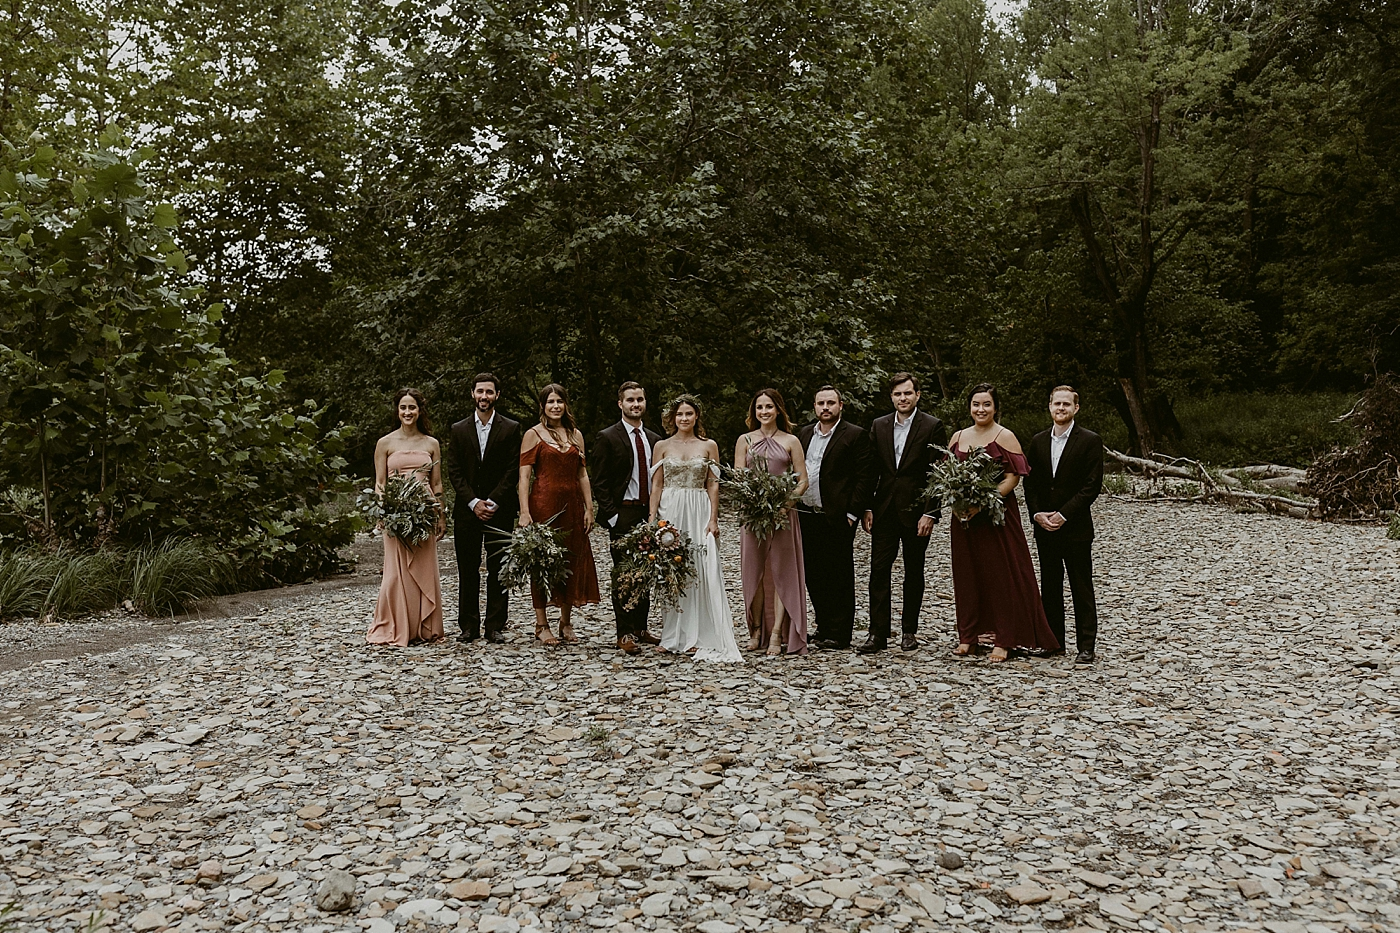 Woodland-Theater-Wedding-Molly+Ryan_MJPHOTO-268.jpg